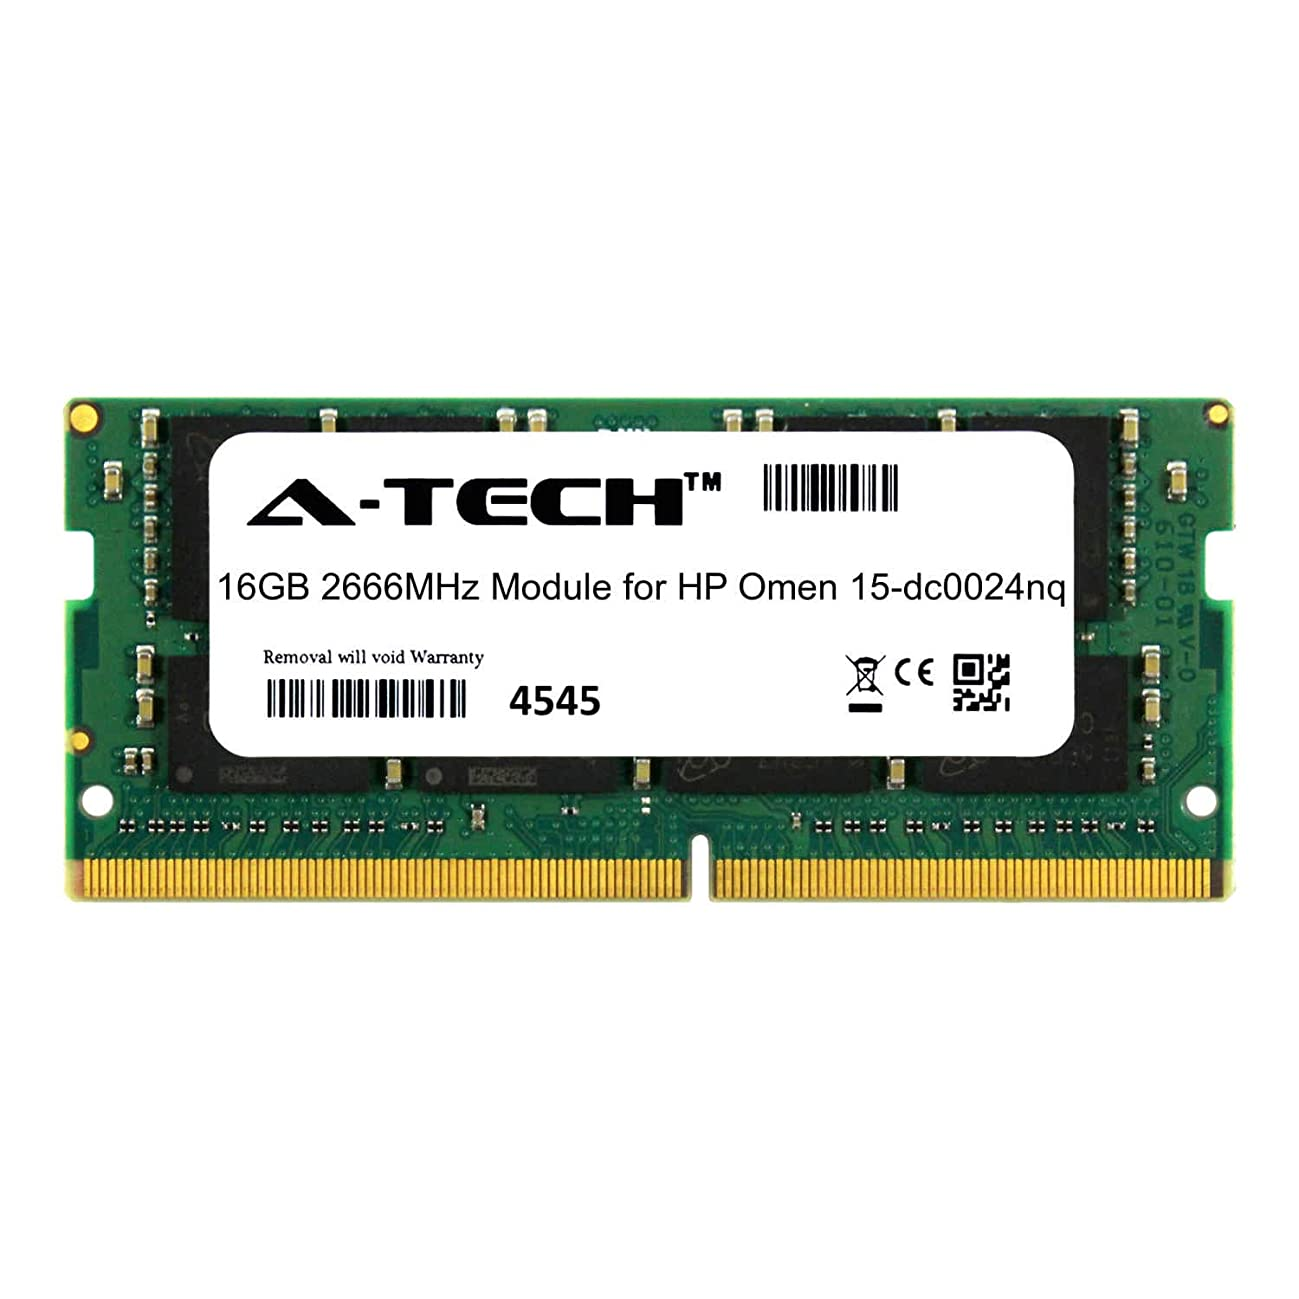 A-Tech 16GB Module for HP Omen 15-dc0024nq Laptop & Notebook Compatible DDR4 2666Mhz Memory Ram (ATMS280635A25832X1)